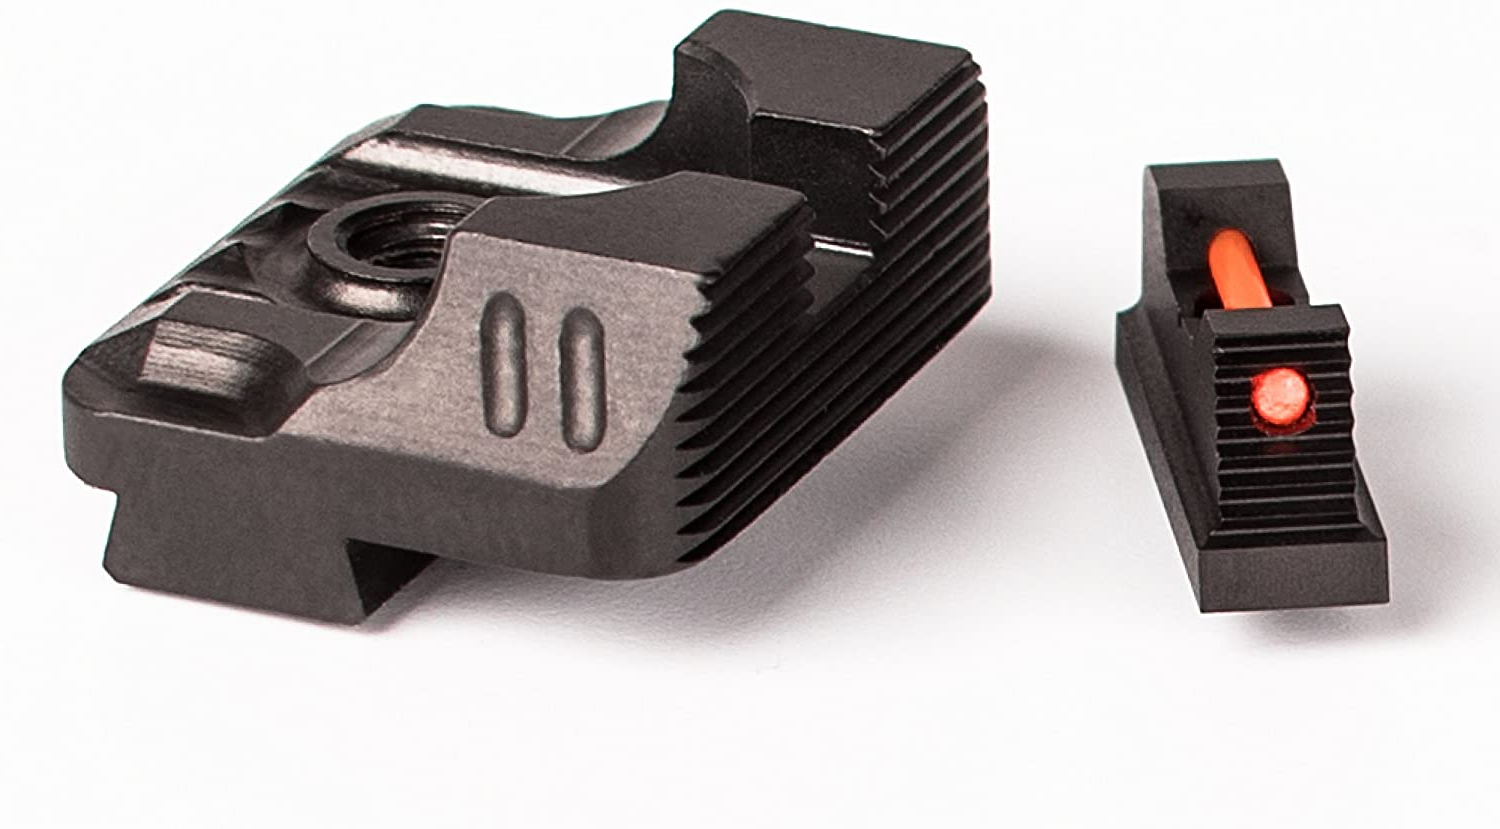 Well Liked Zev Zt Sight 215 Fo Com3 B Sight Set (View 21 of 30)